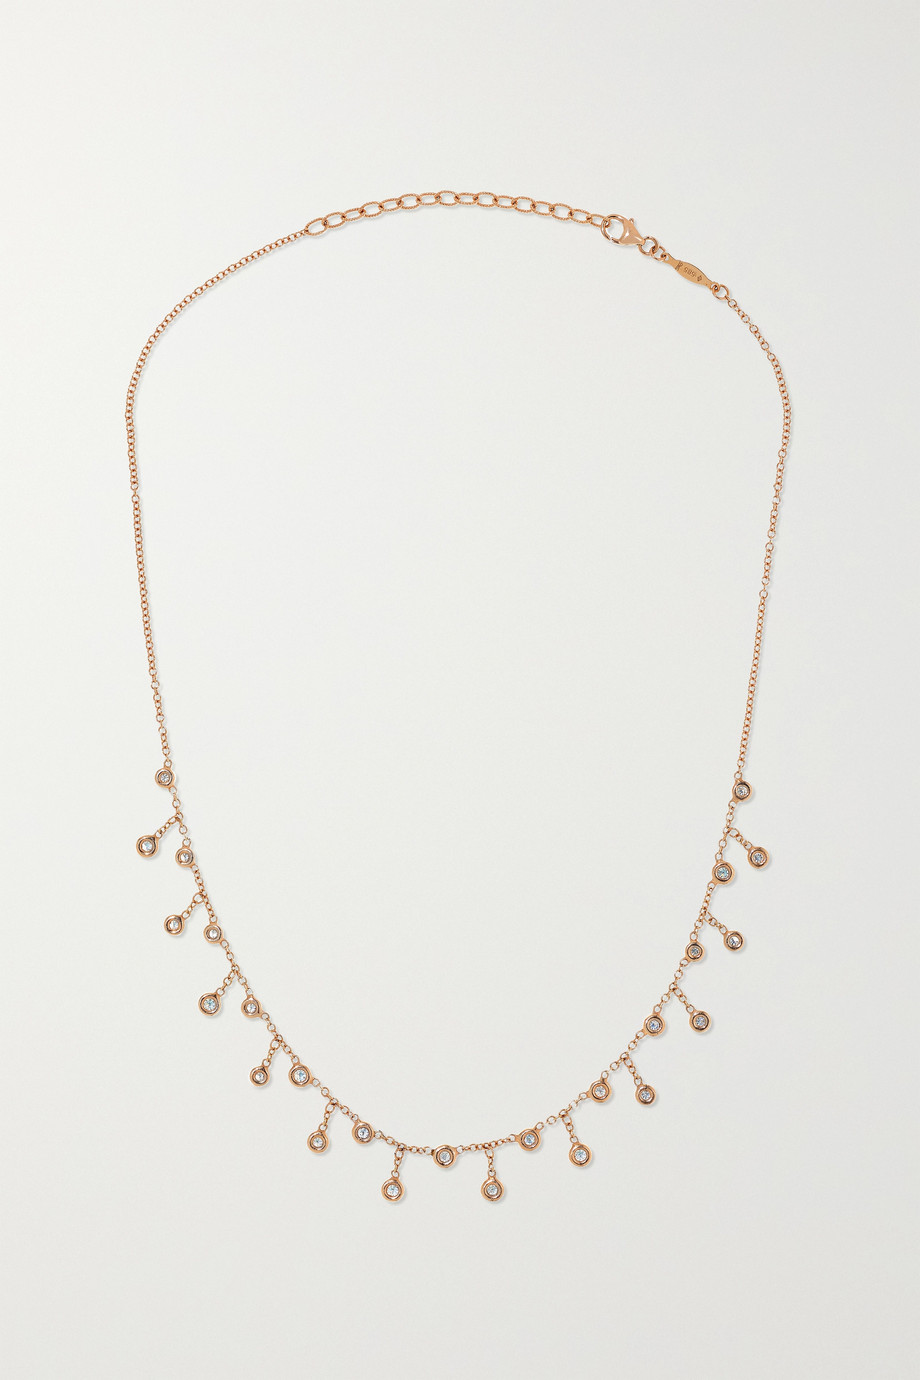 JACQUIE AICHE 14-karat rose gold diamond necklace